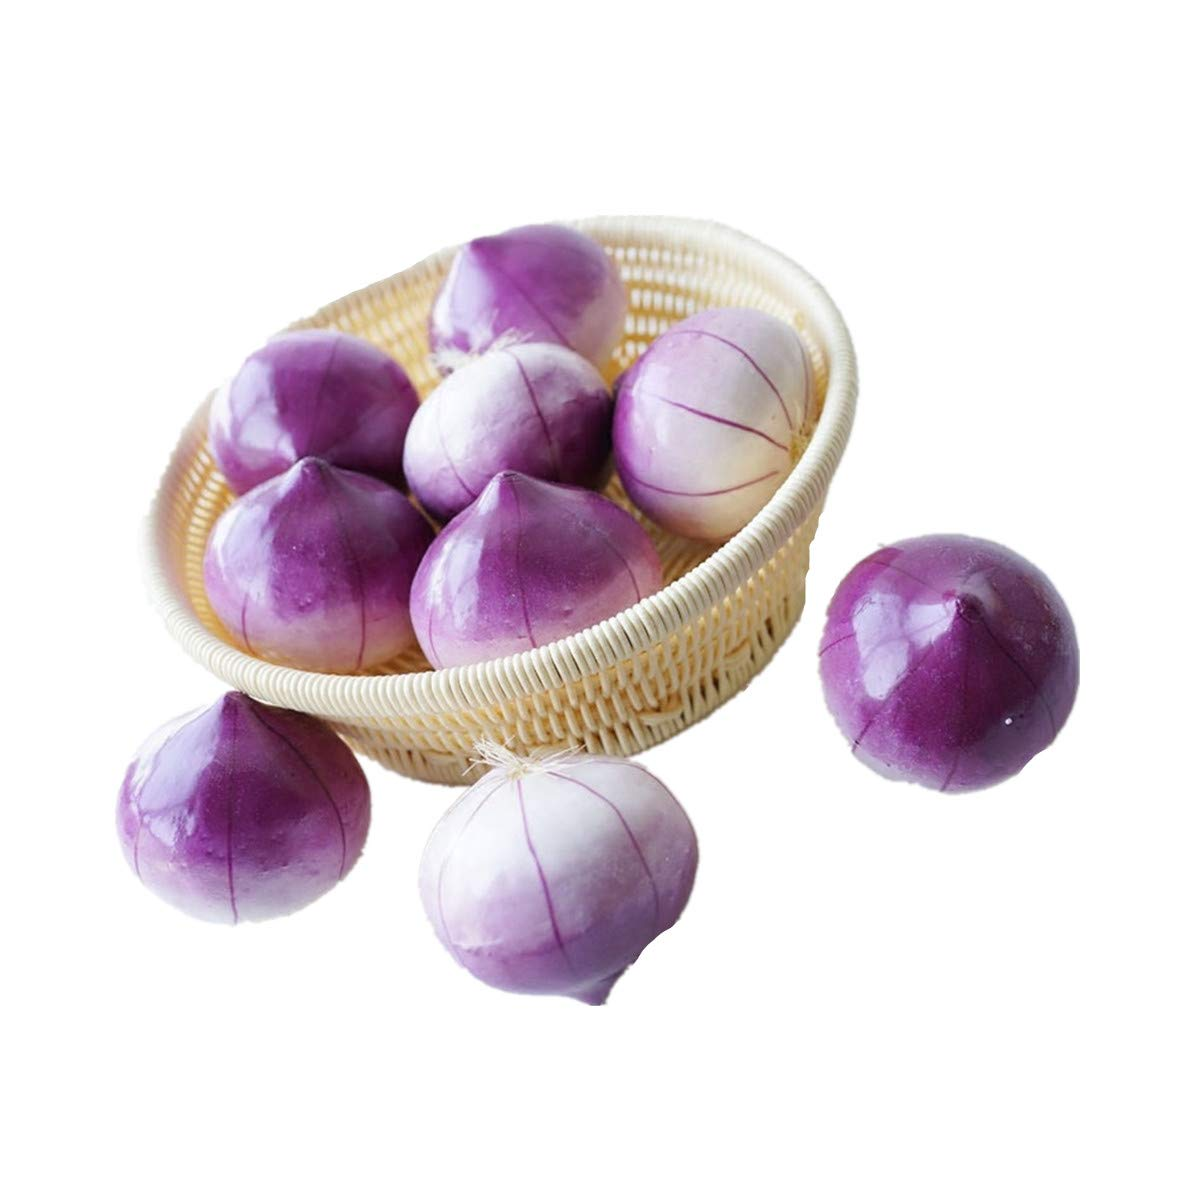 XINFU 3pcs Fake Onion Lifelike Natural Artificil Oinion Fake Vegetable for Home Kitchen Shop Decoration by XINFU